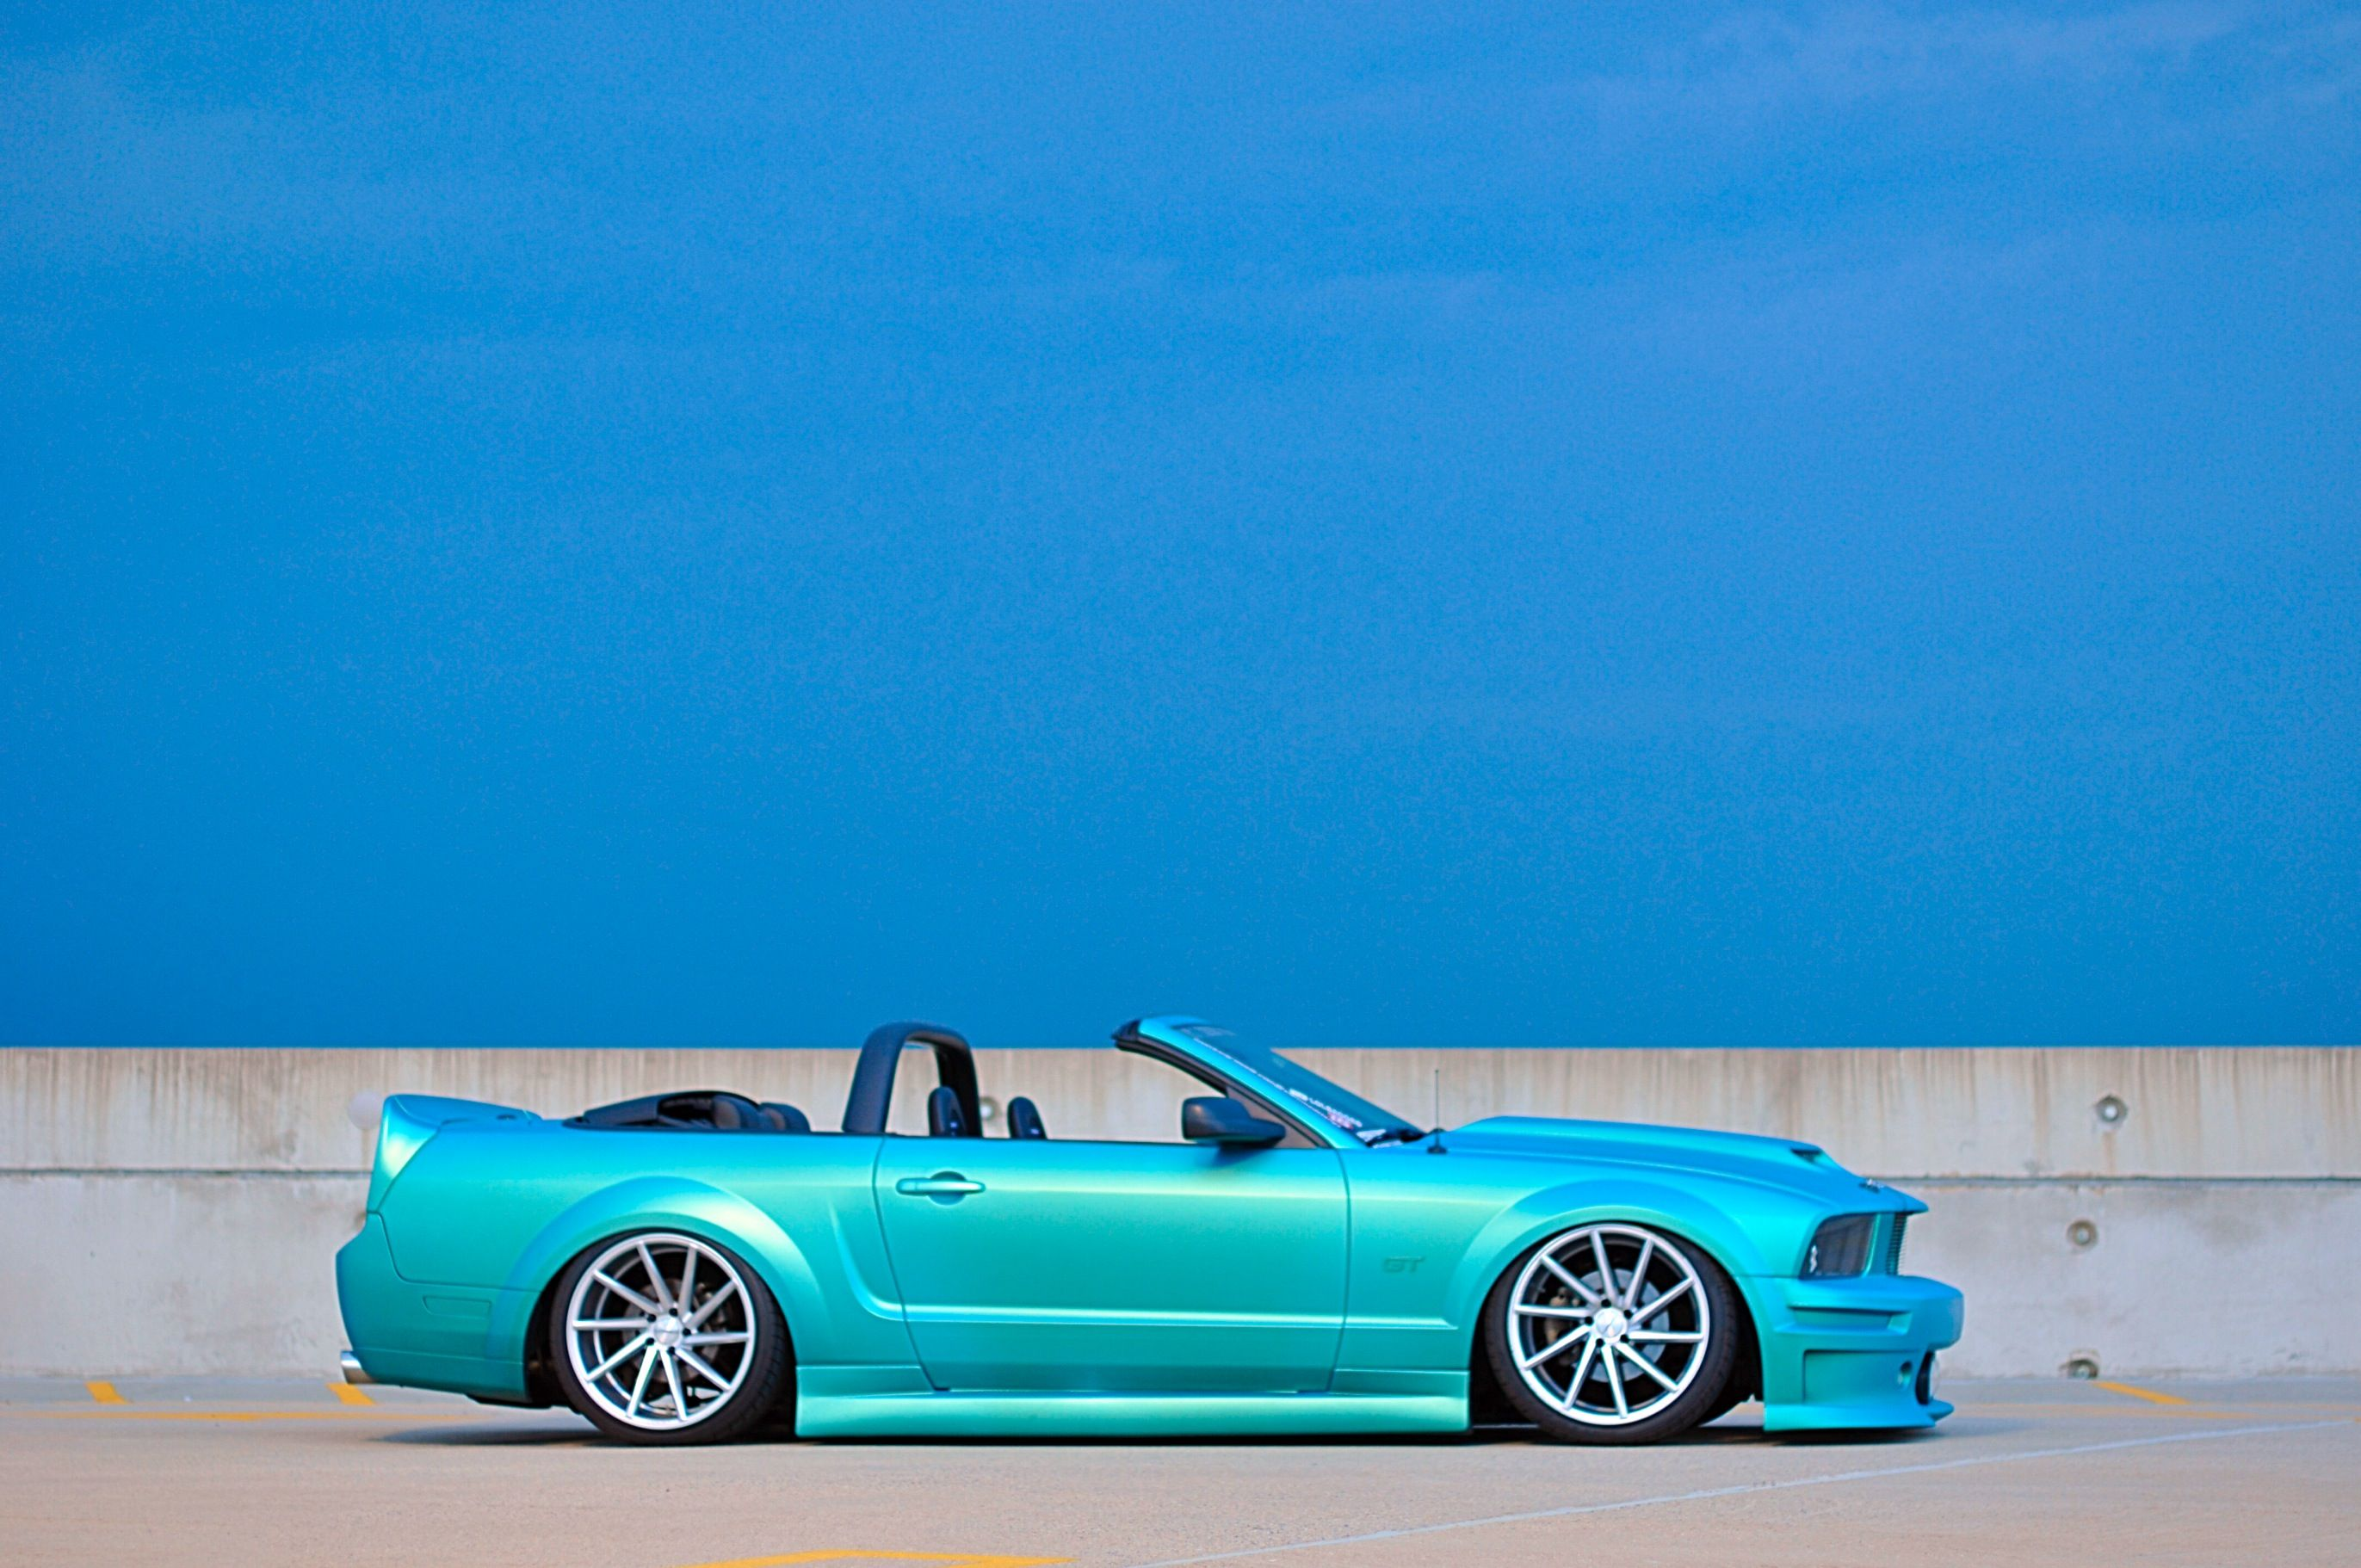 Mustang by Ray Wilkins on Mustangs Dream cars, Ford mustang